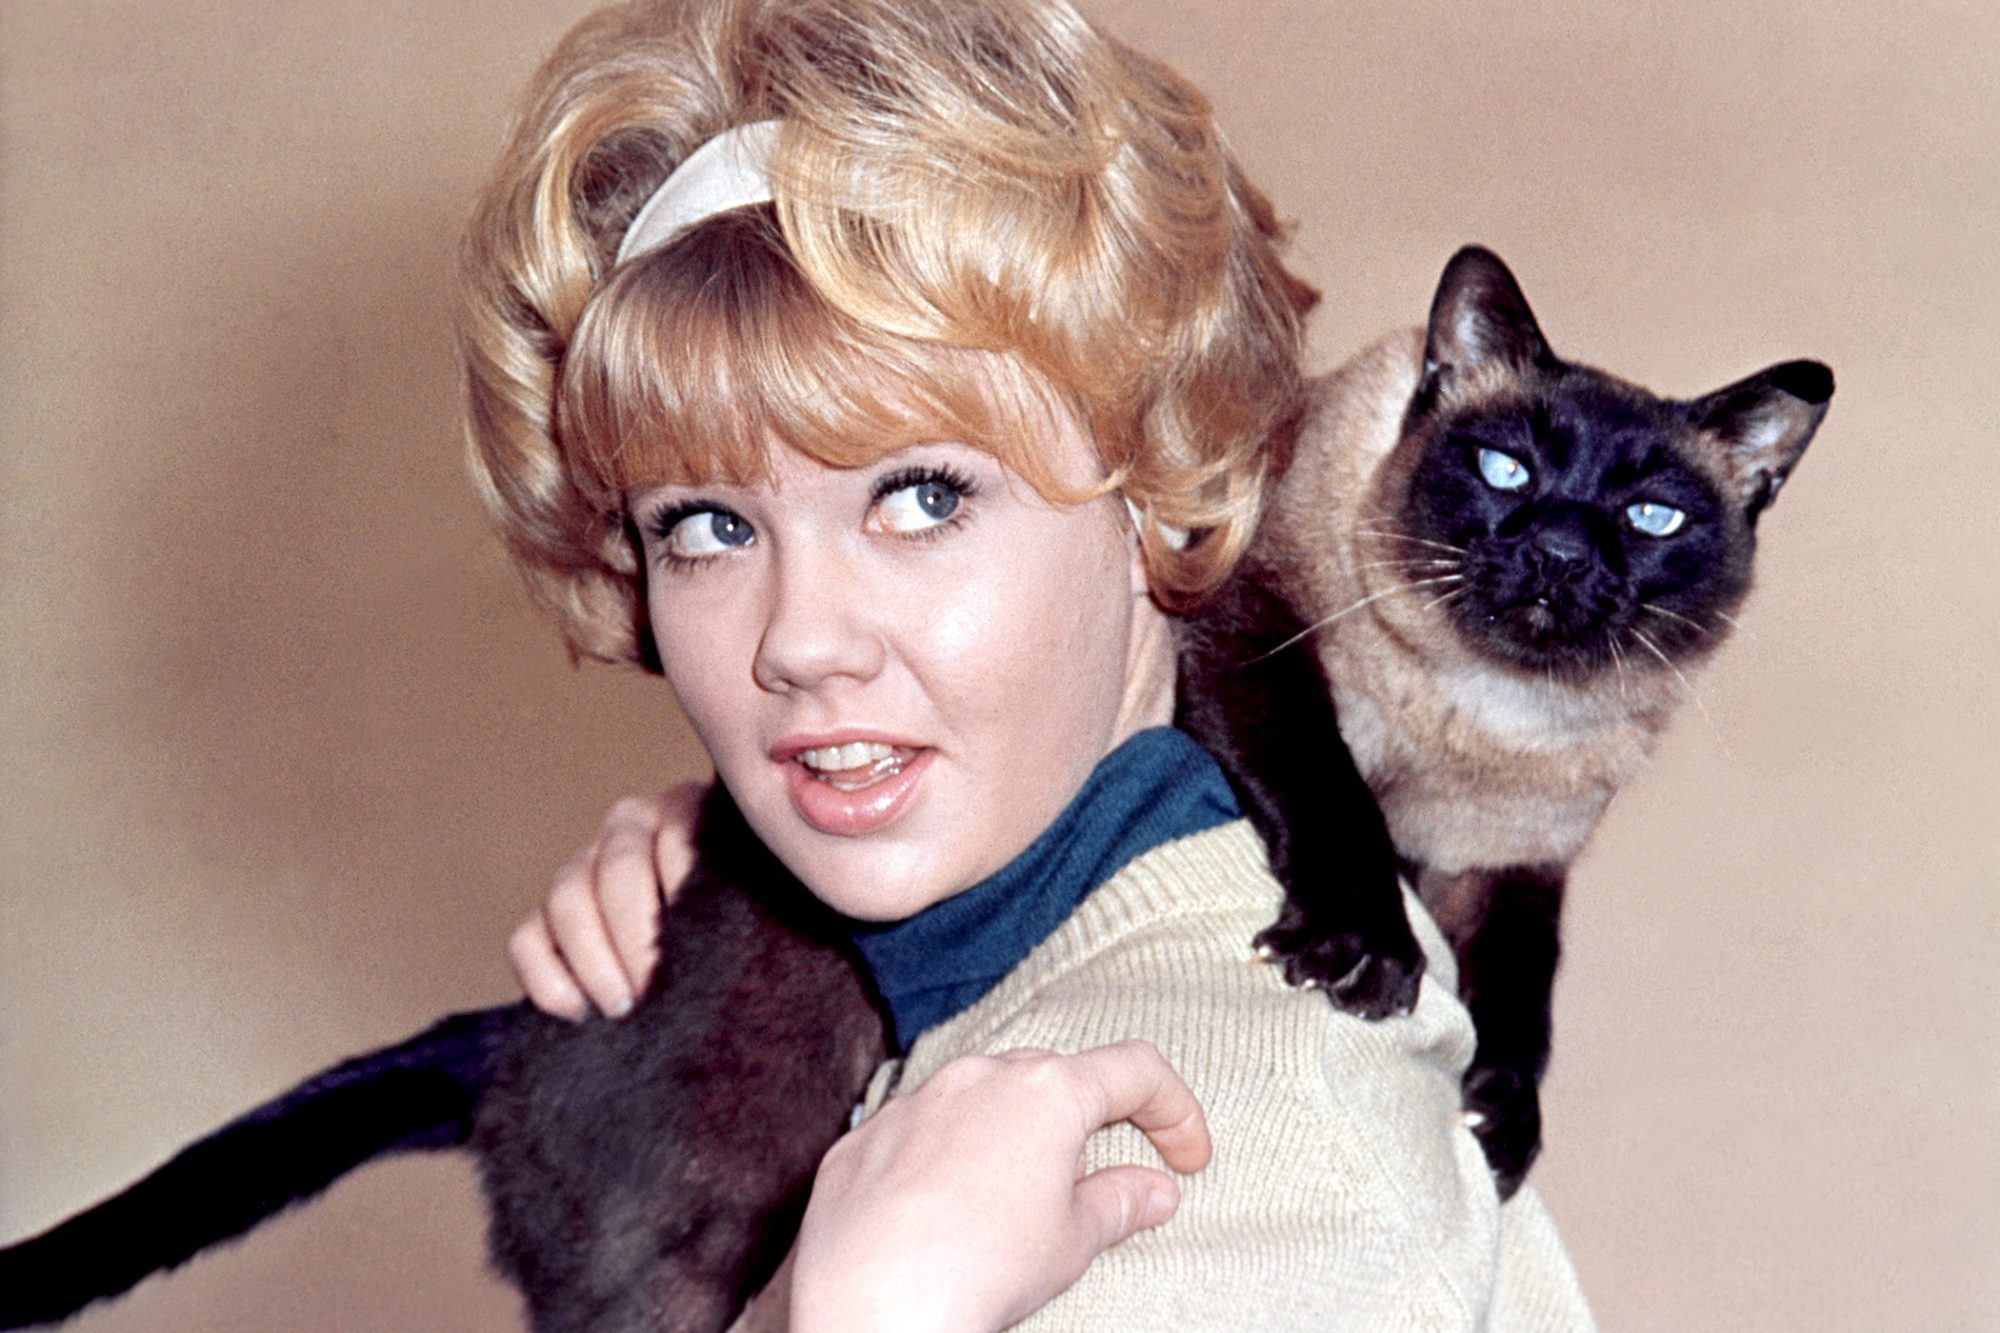 Women with 50s hairdo holds siamese cat on shoulder